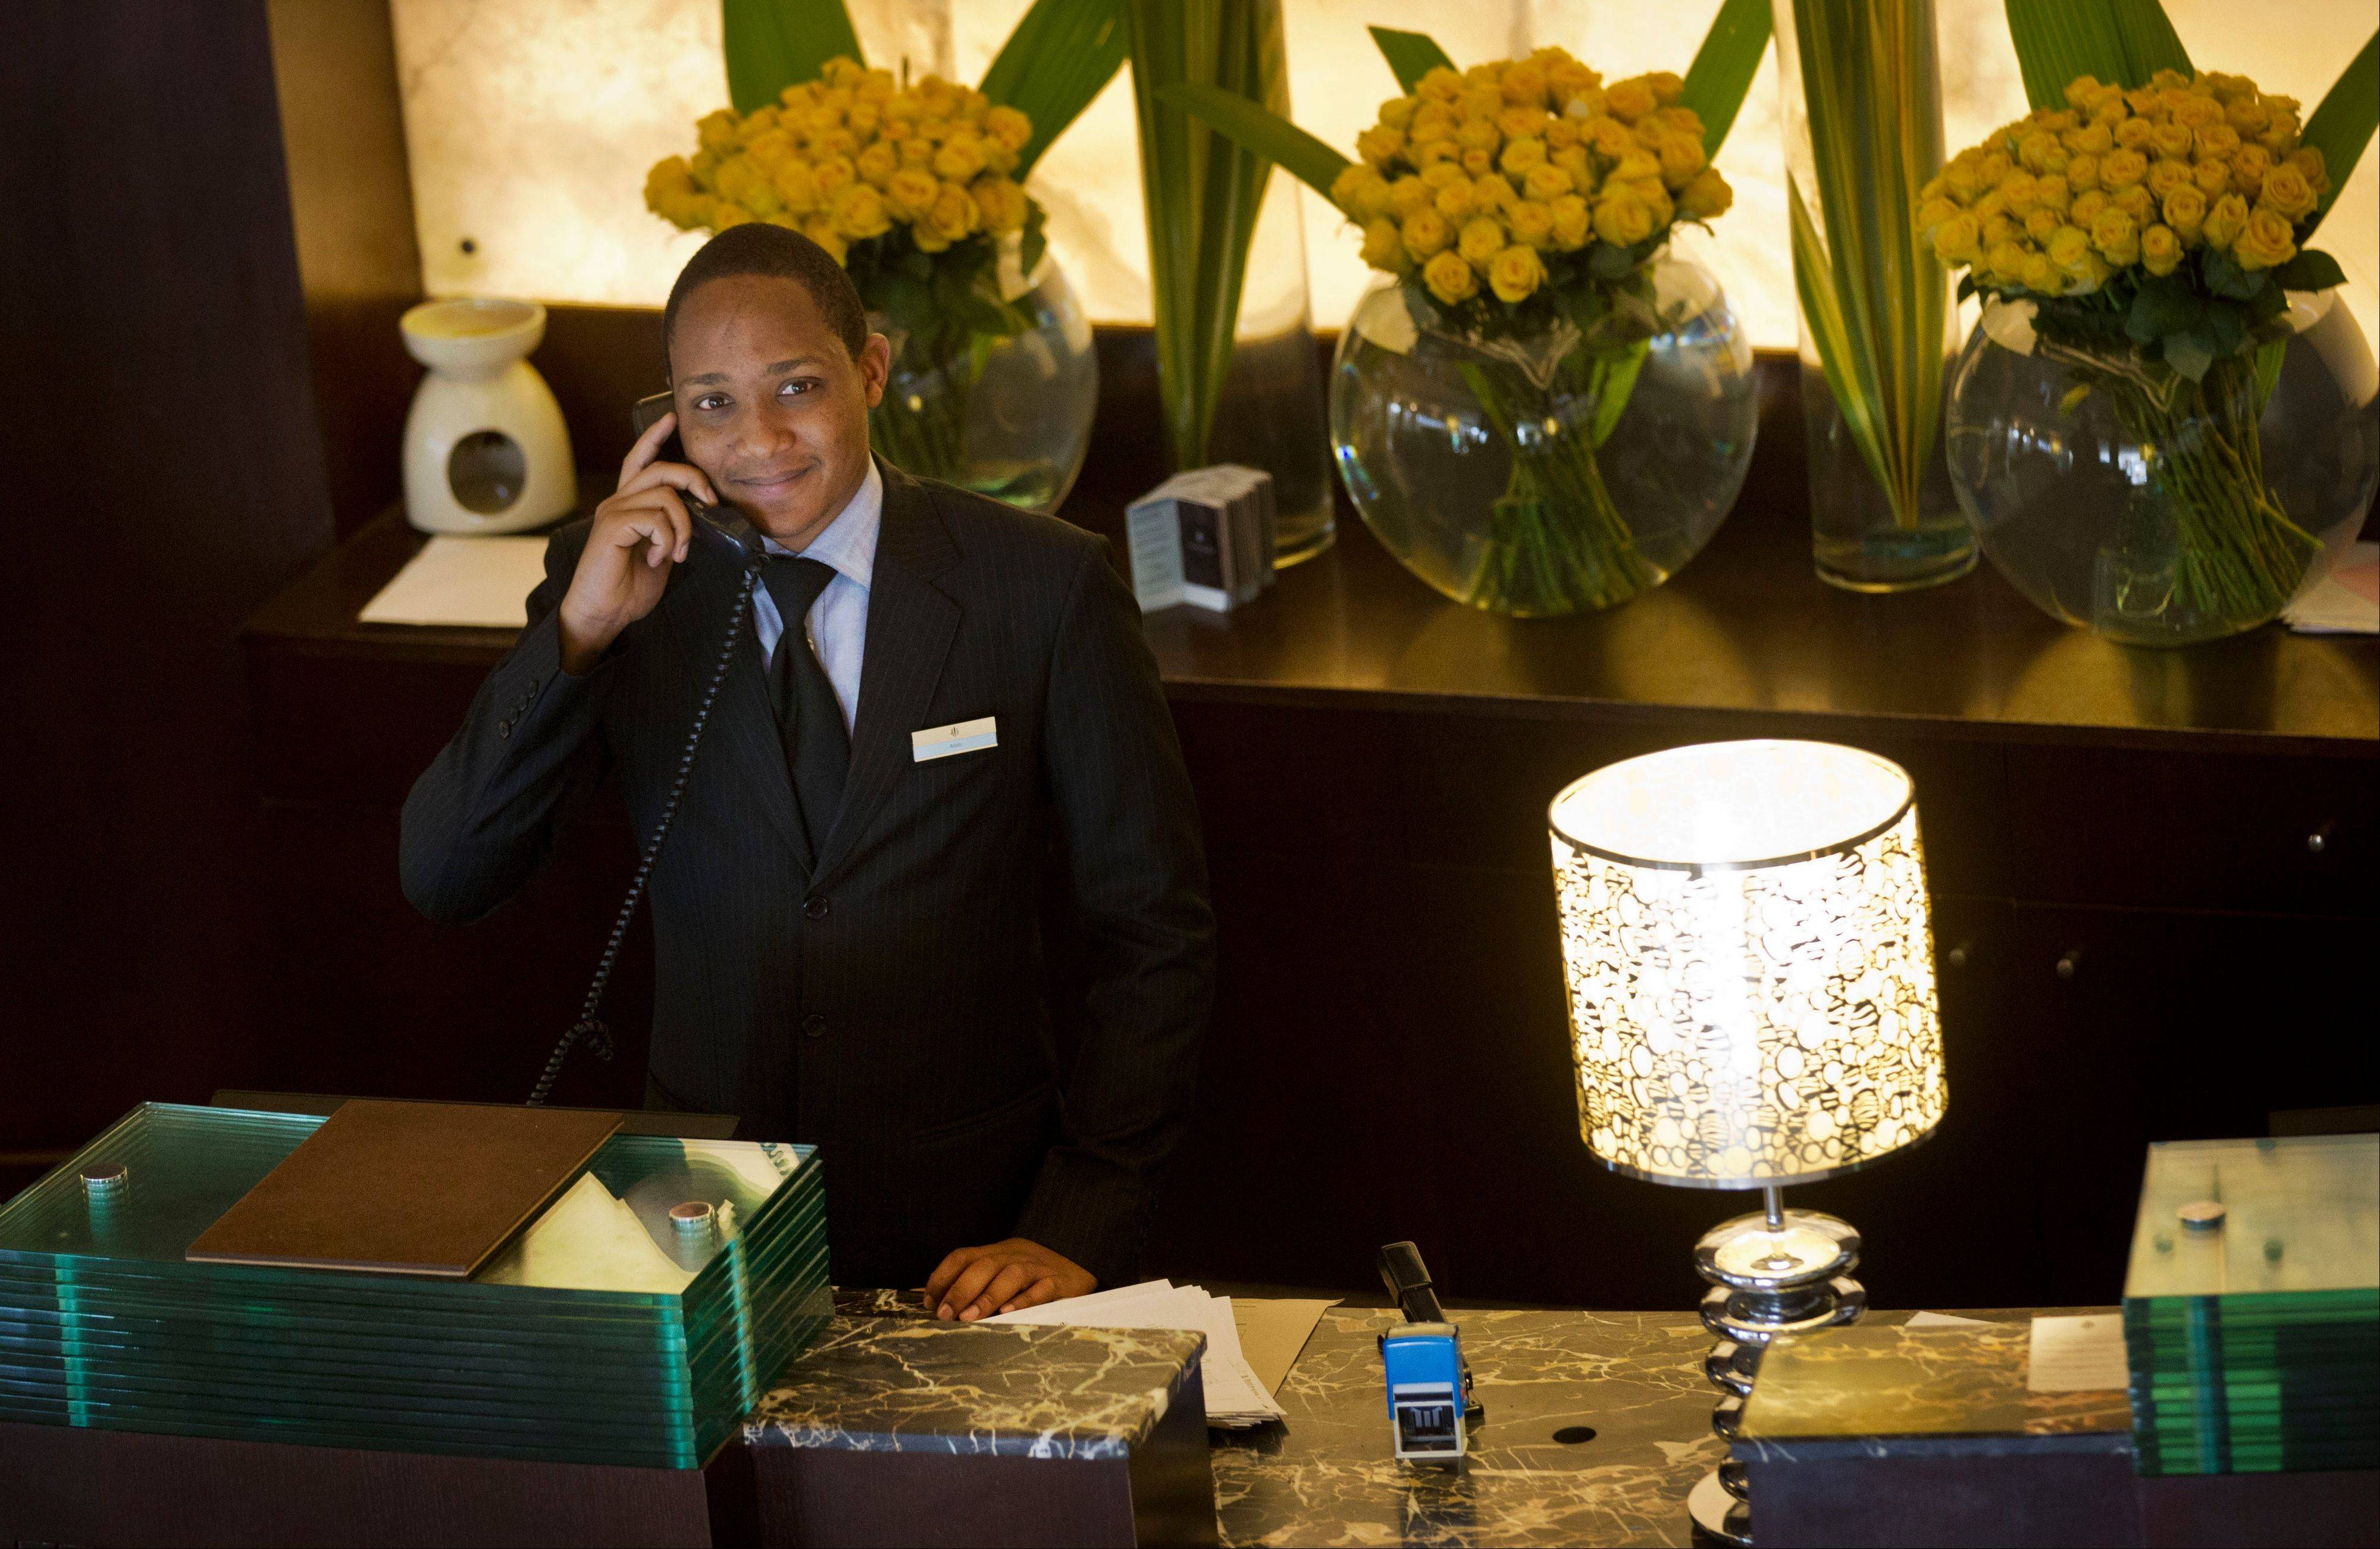 A receptionist takes a call at the front desk of the Sankara Nairobi hotel in Nairobi, Kenya. International hotel developers are planning nearly 40,000 new rooms across Africa in the coming years, the continent's business travel is increasing, and Africa's middle class will soon begin leisure travel en masse.